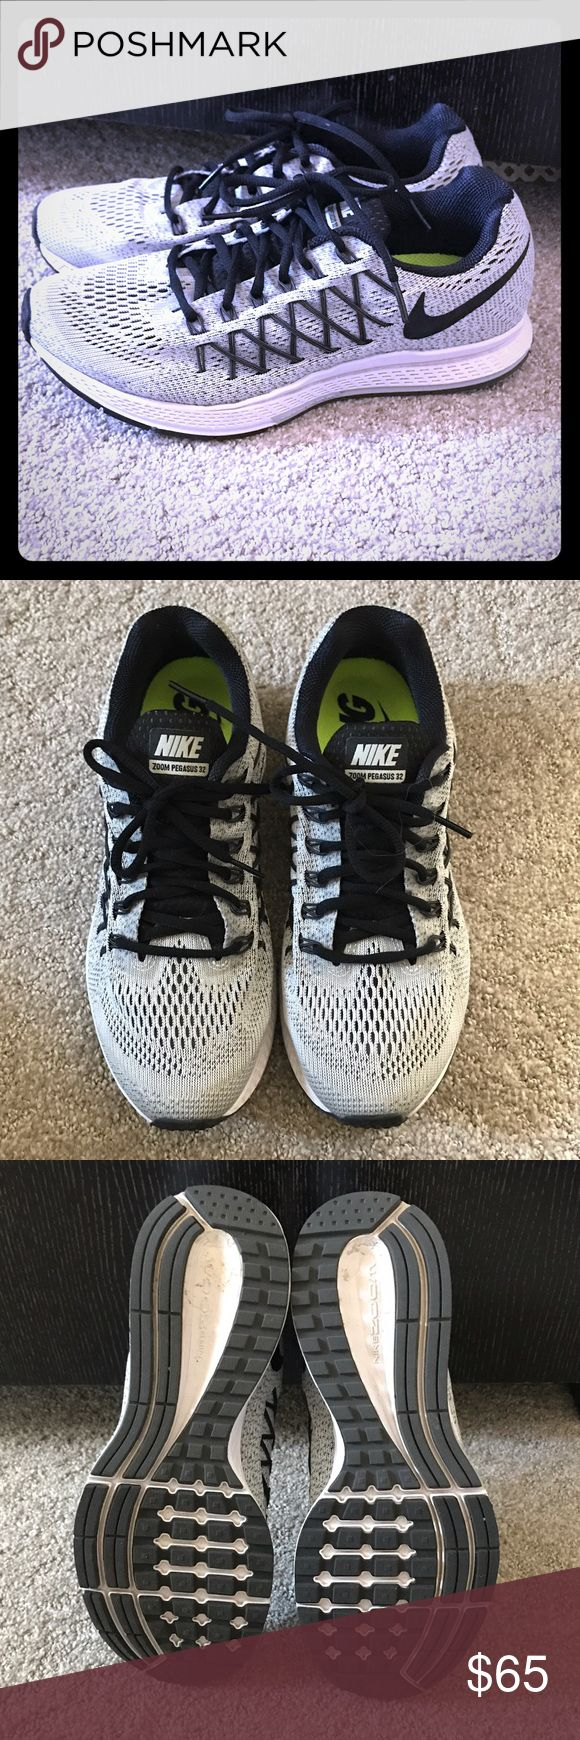 NIKE Zoom Pegasus 32 Sz 9 NIKE Zoom Pegasus 32 Sz 9. Perfect, new condition. Wore once for about 2 hours. Gray and black. Nike Shoes Athletic Shoes